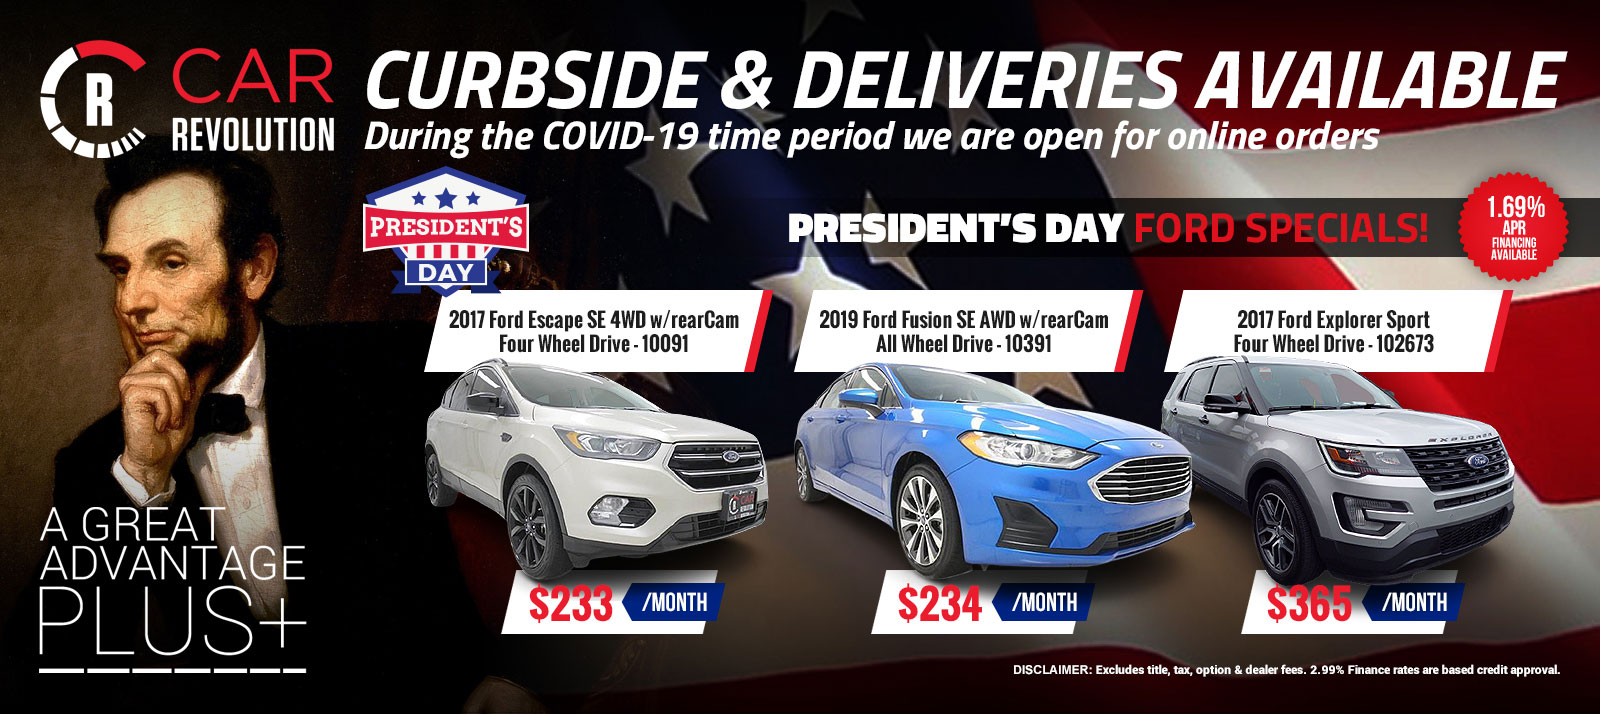 FORD PRESIDENT DAY Specials!